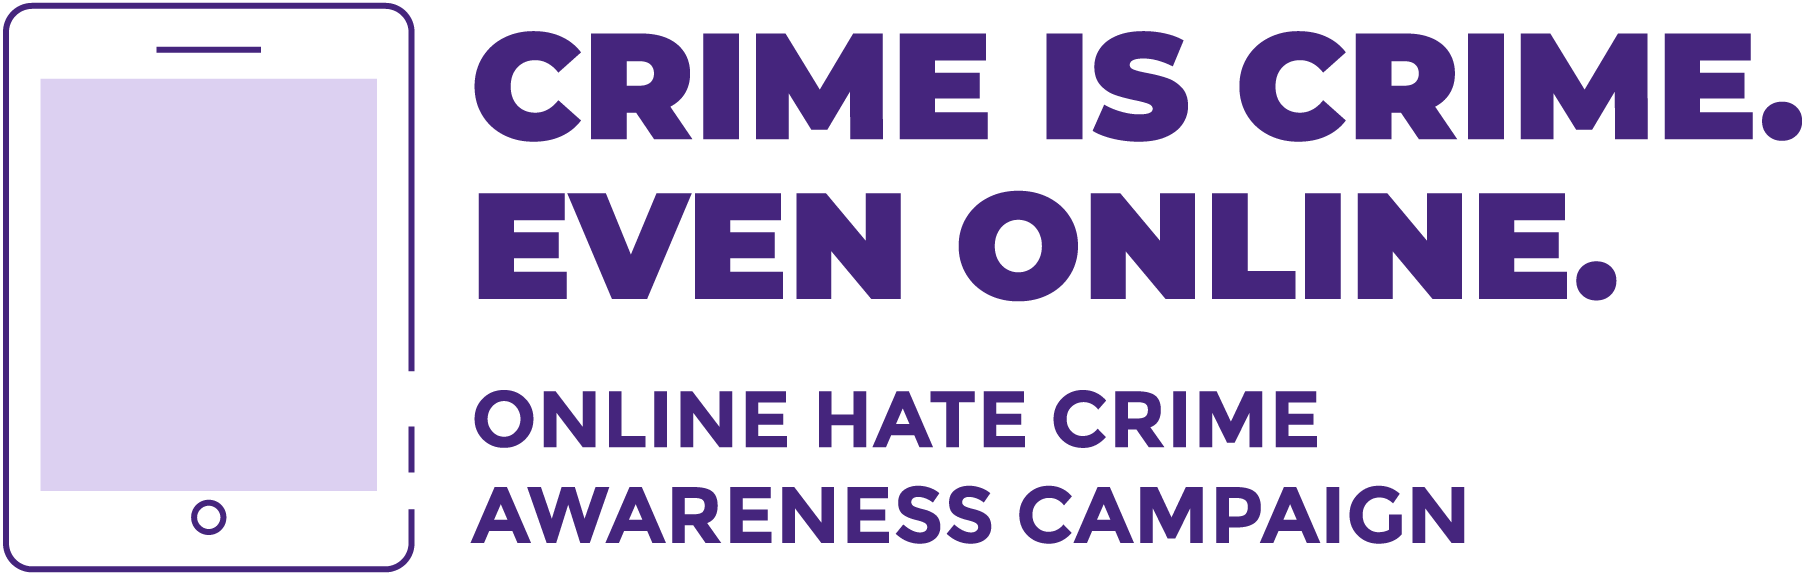 Crime is Crime Even Online